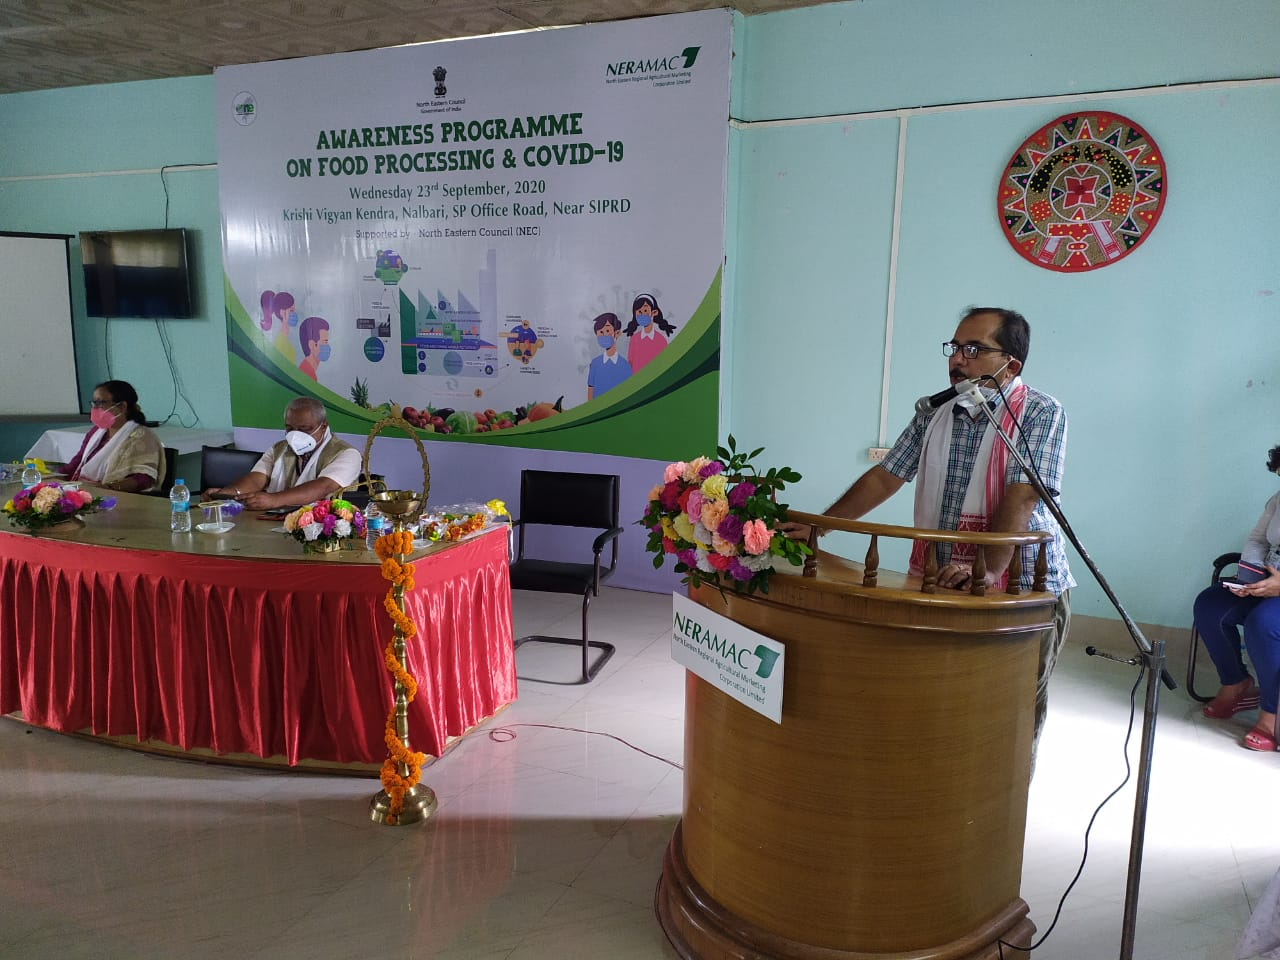 Awareness Programme on Food Processing & Covid – 19 at Nalbari